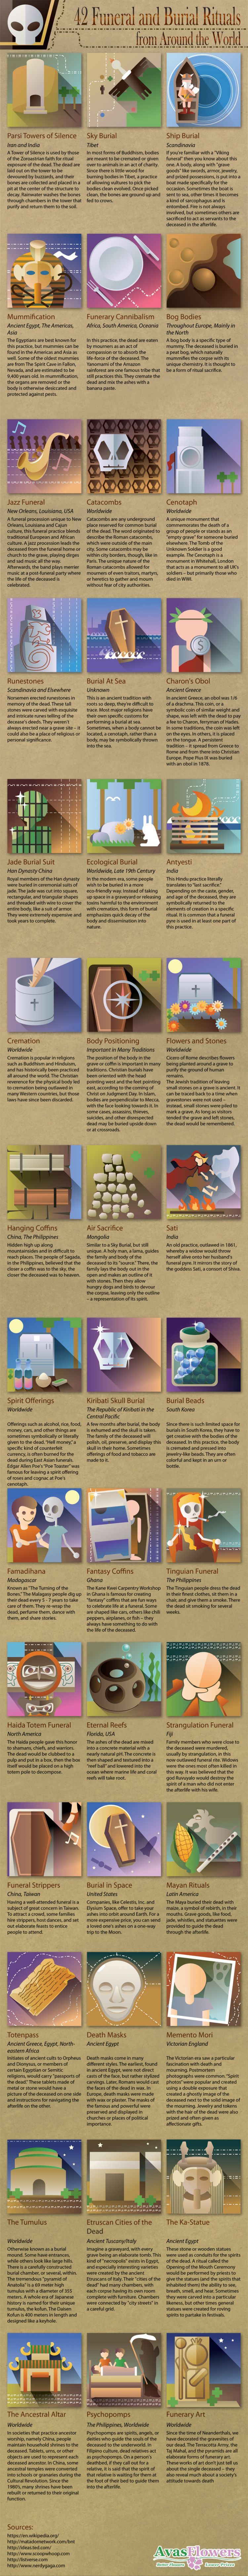 42 funeral customs from around the world infographic